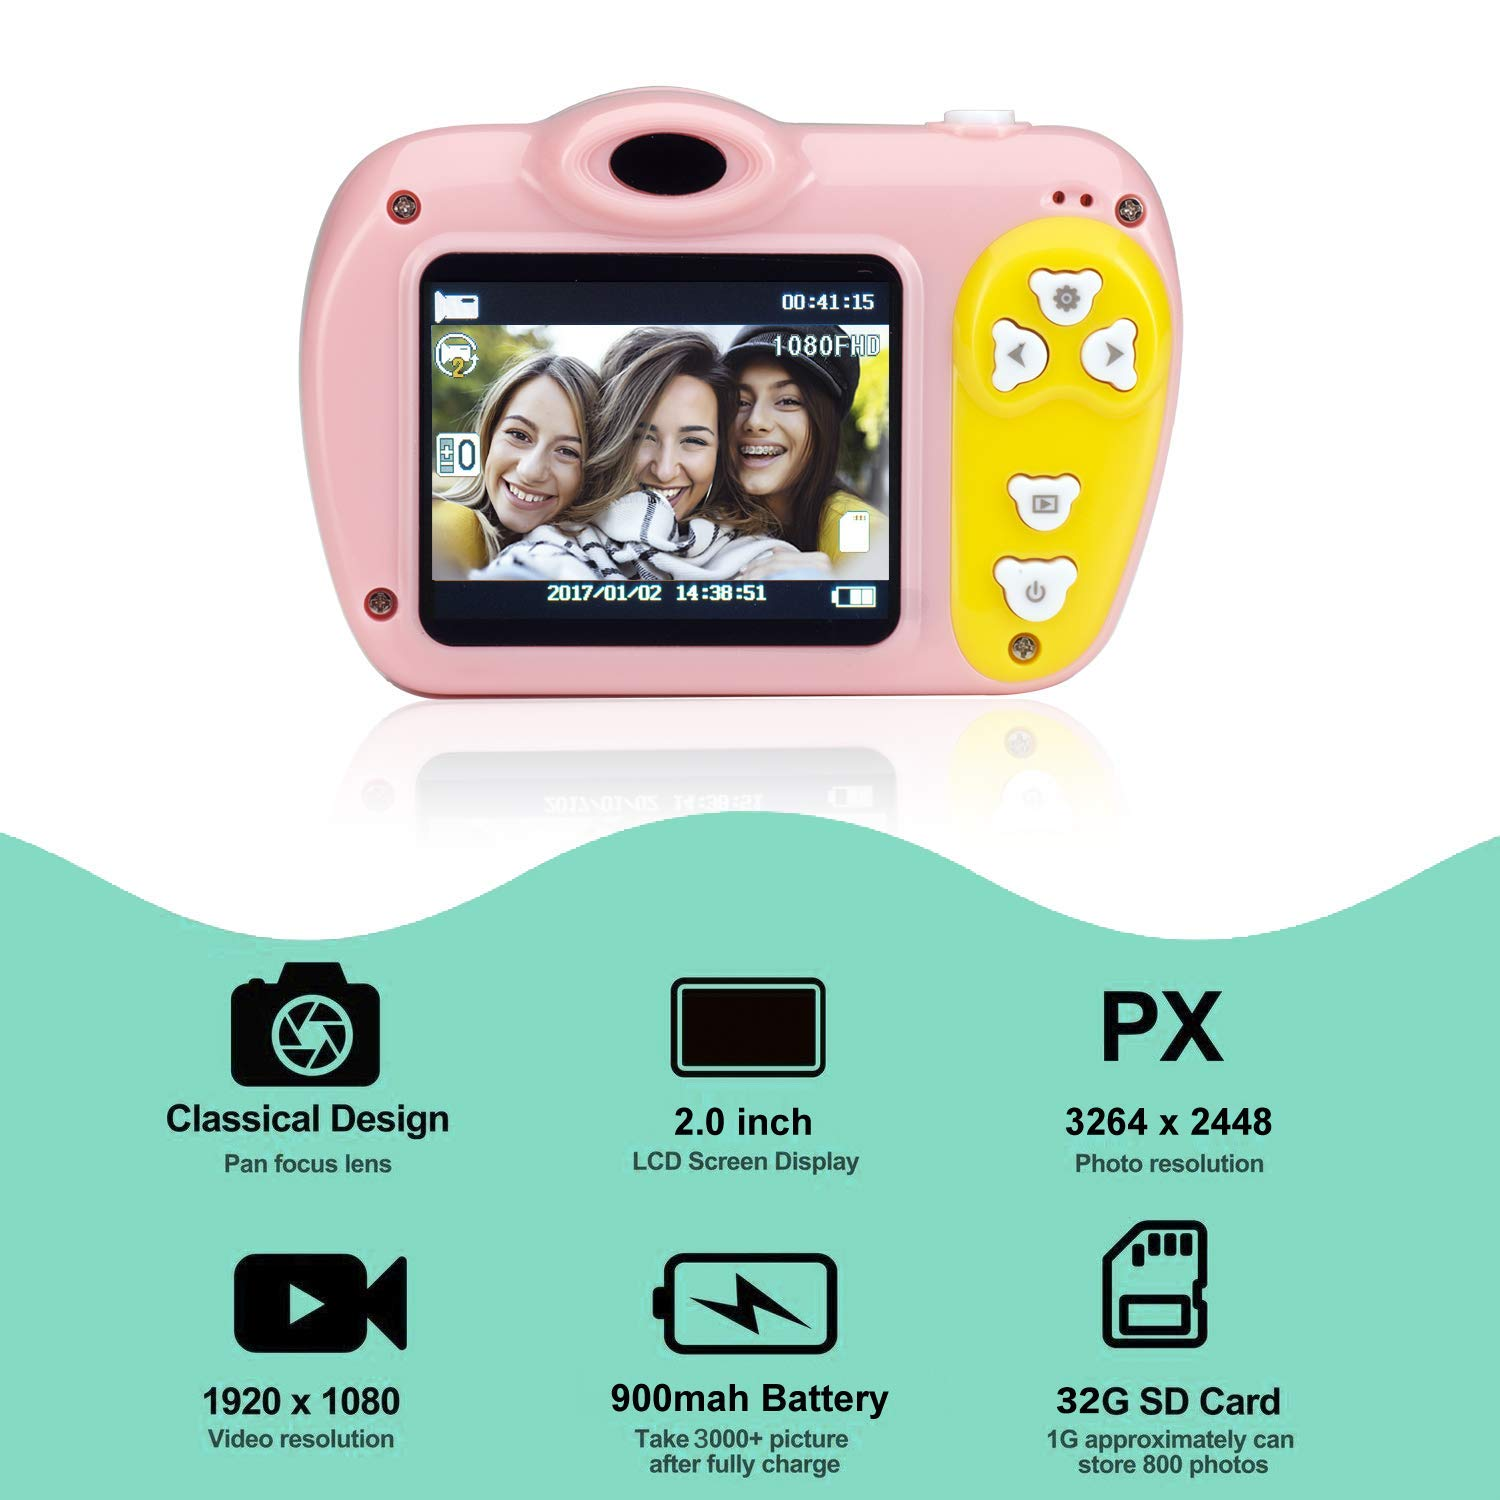 Kasney E8 Digital Kids Camera Rechargeable Digital Photo//Video 1080 HD Camera with 8Gb Memory Card Creative l Video Camcorder Rear Selfie Outdoor Playing for Child Boys Girls Orange